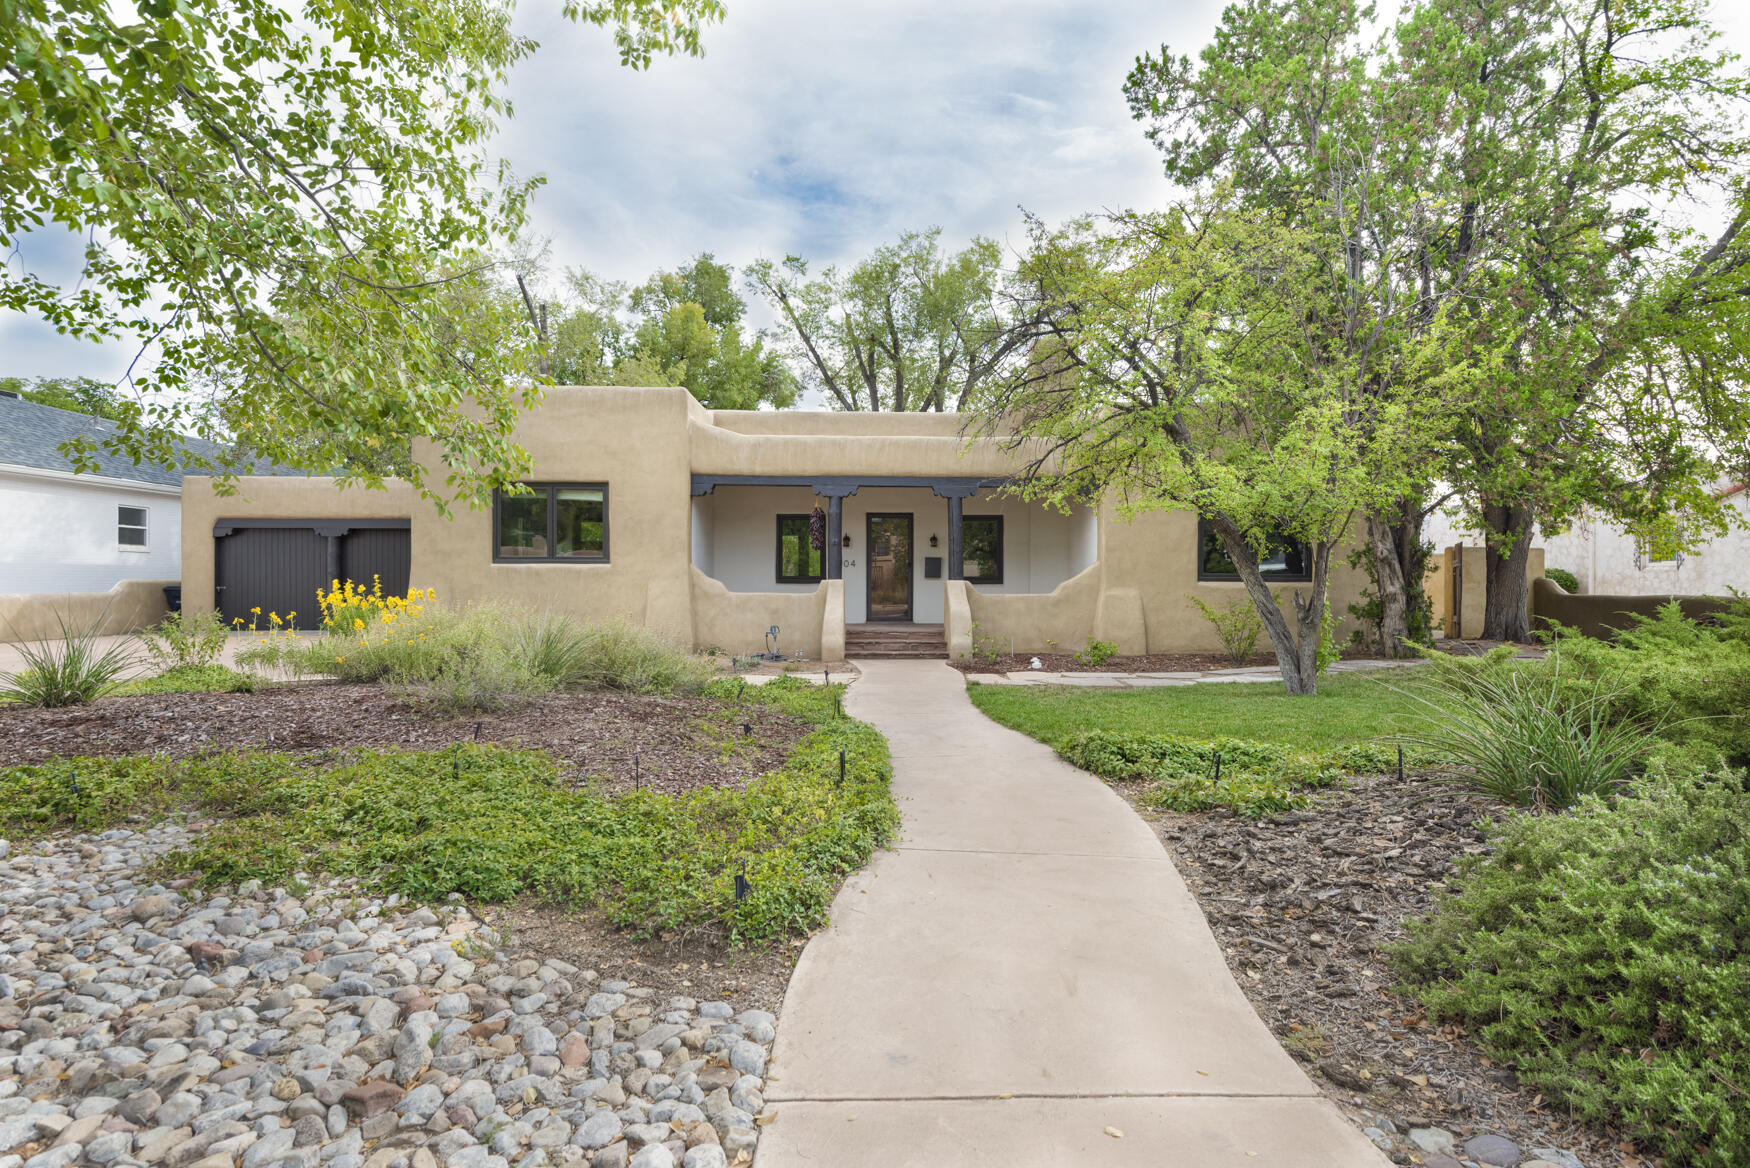 Truly spectacular Pueblo Revival home in the heart of Albuquerque's Ridgecrest neighborhood. The vintage charm of this house has been meticulously restored and combined with modern fixtures and amenities that have been carefully selected to enhance the original character of the house. The gracious living room features white oak floors, a beautiful kiva fireplace resting upon a flagstone hearth, dramatic original viga and latilla ceiling and French doors that open to the park-like backyard. The Kitchen offers custom wood cabinets, engineered stone tops, stainless appliances. Pella wood clad windows with custom shades are installed throughout main level. The double lot boasts incredible landscaping with mature trees, verdant lawn, large brick patio plus deck. Near UNM, Nob Hill & Bandelier!